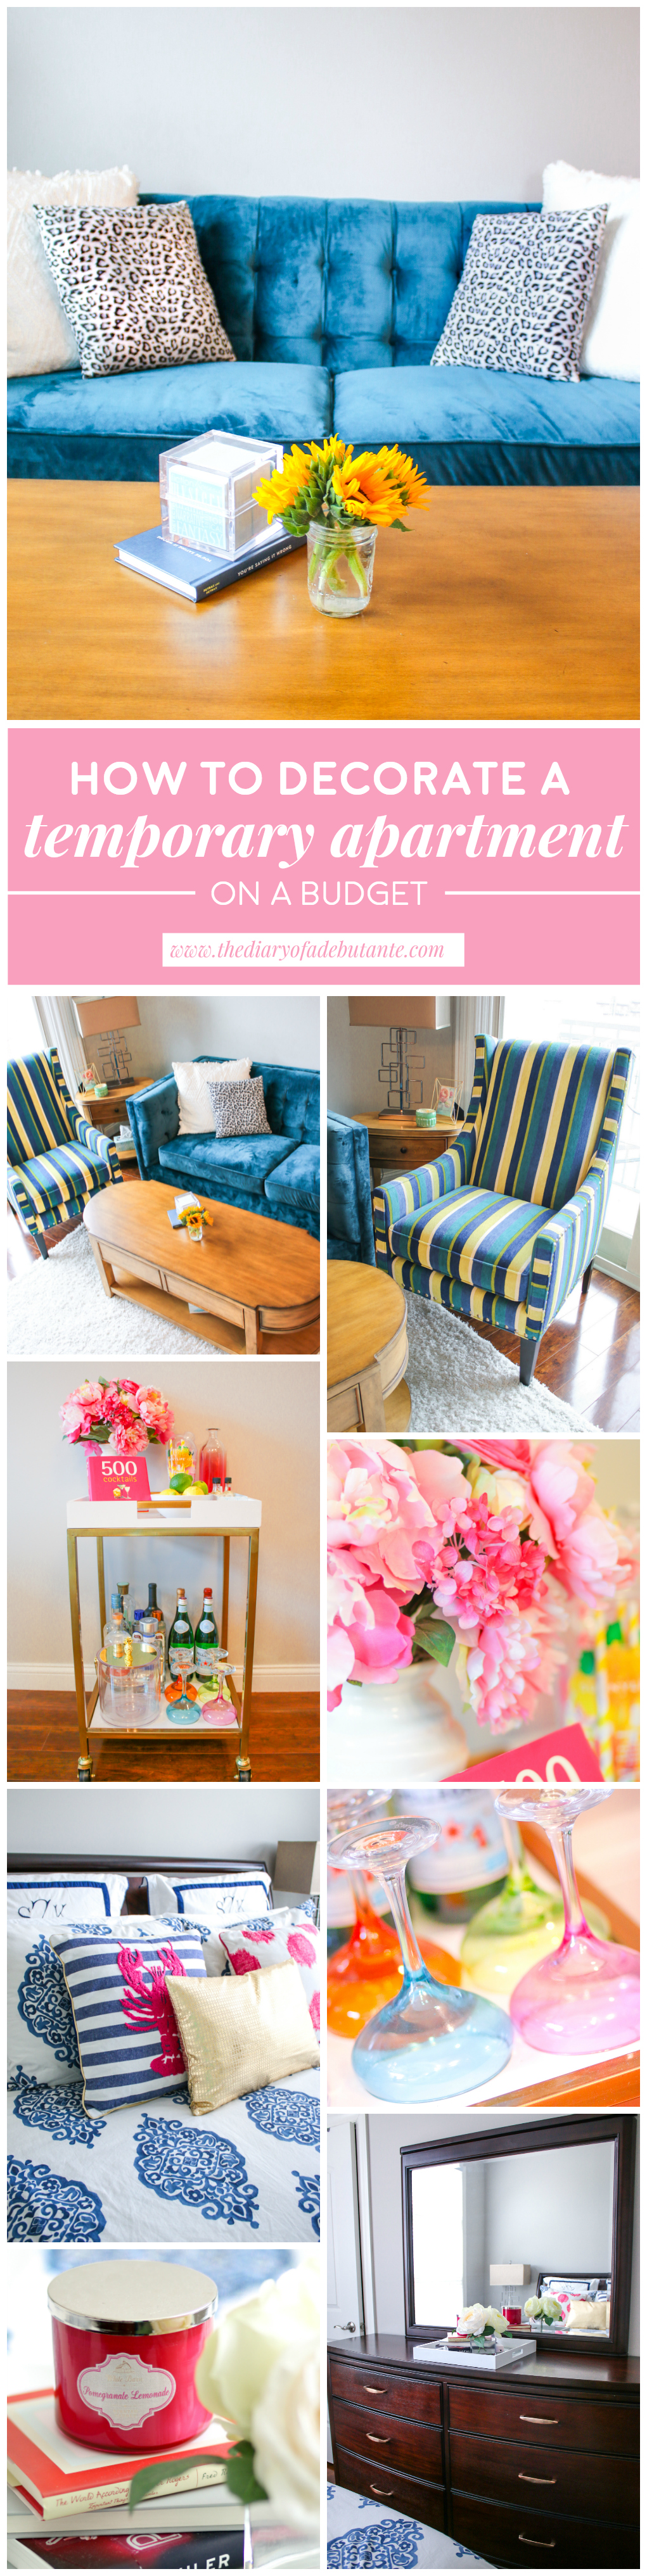 Furnish A Temporary Apartment On A Budget With CORT Furniture Rental.  Decorate ApartmentApartment IdeasHow To ...